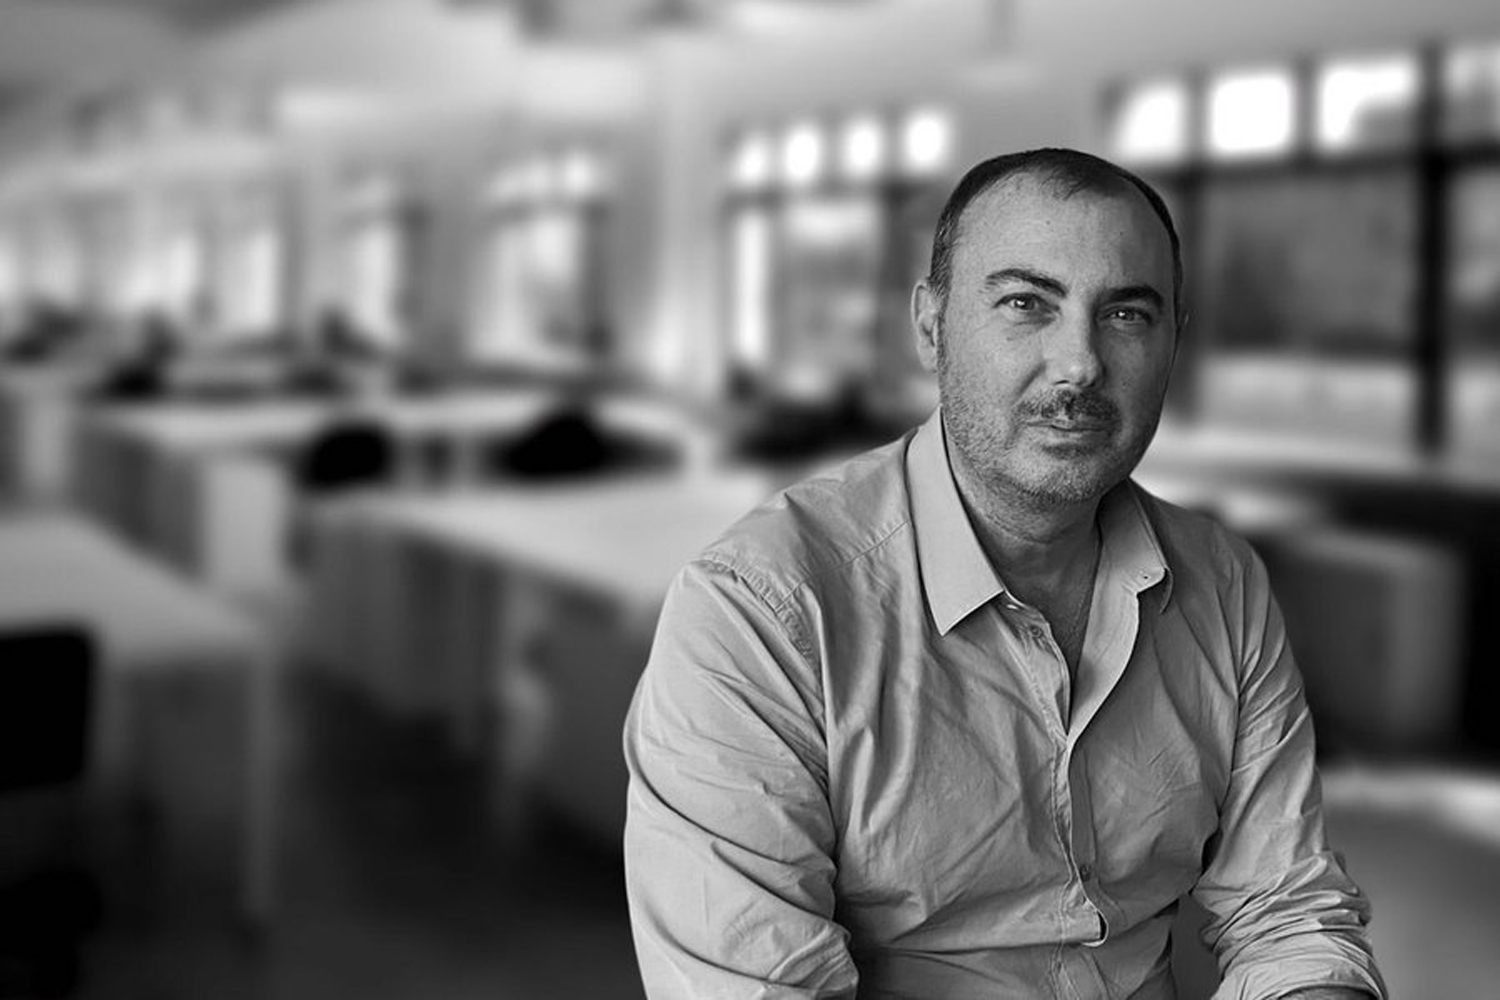 Meet George Arvanitis, the new director of Masterplanning & Urbanism at RMJM Dubai